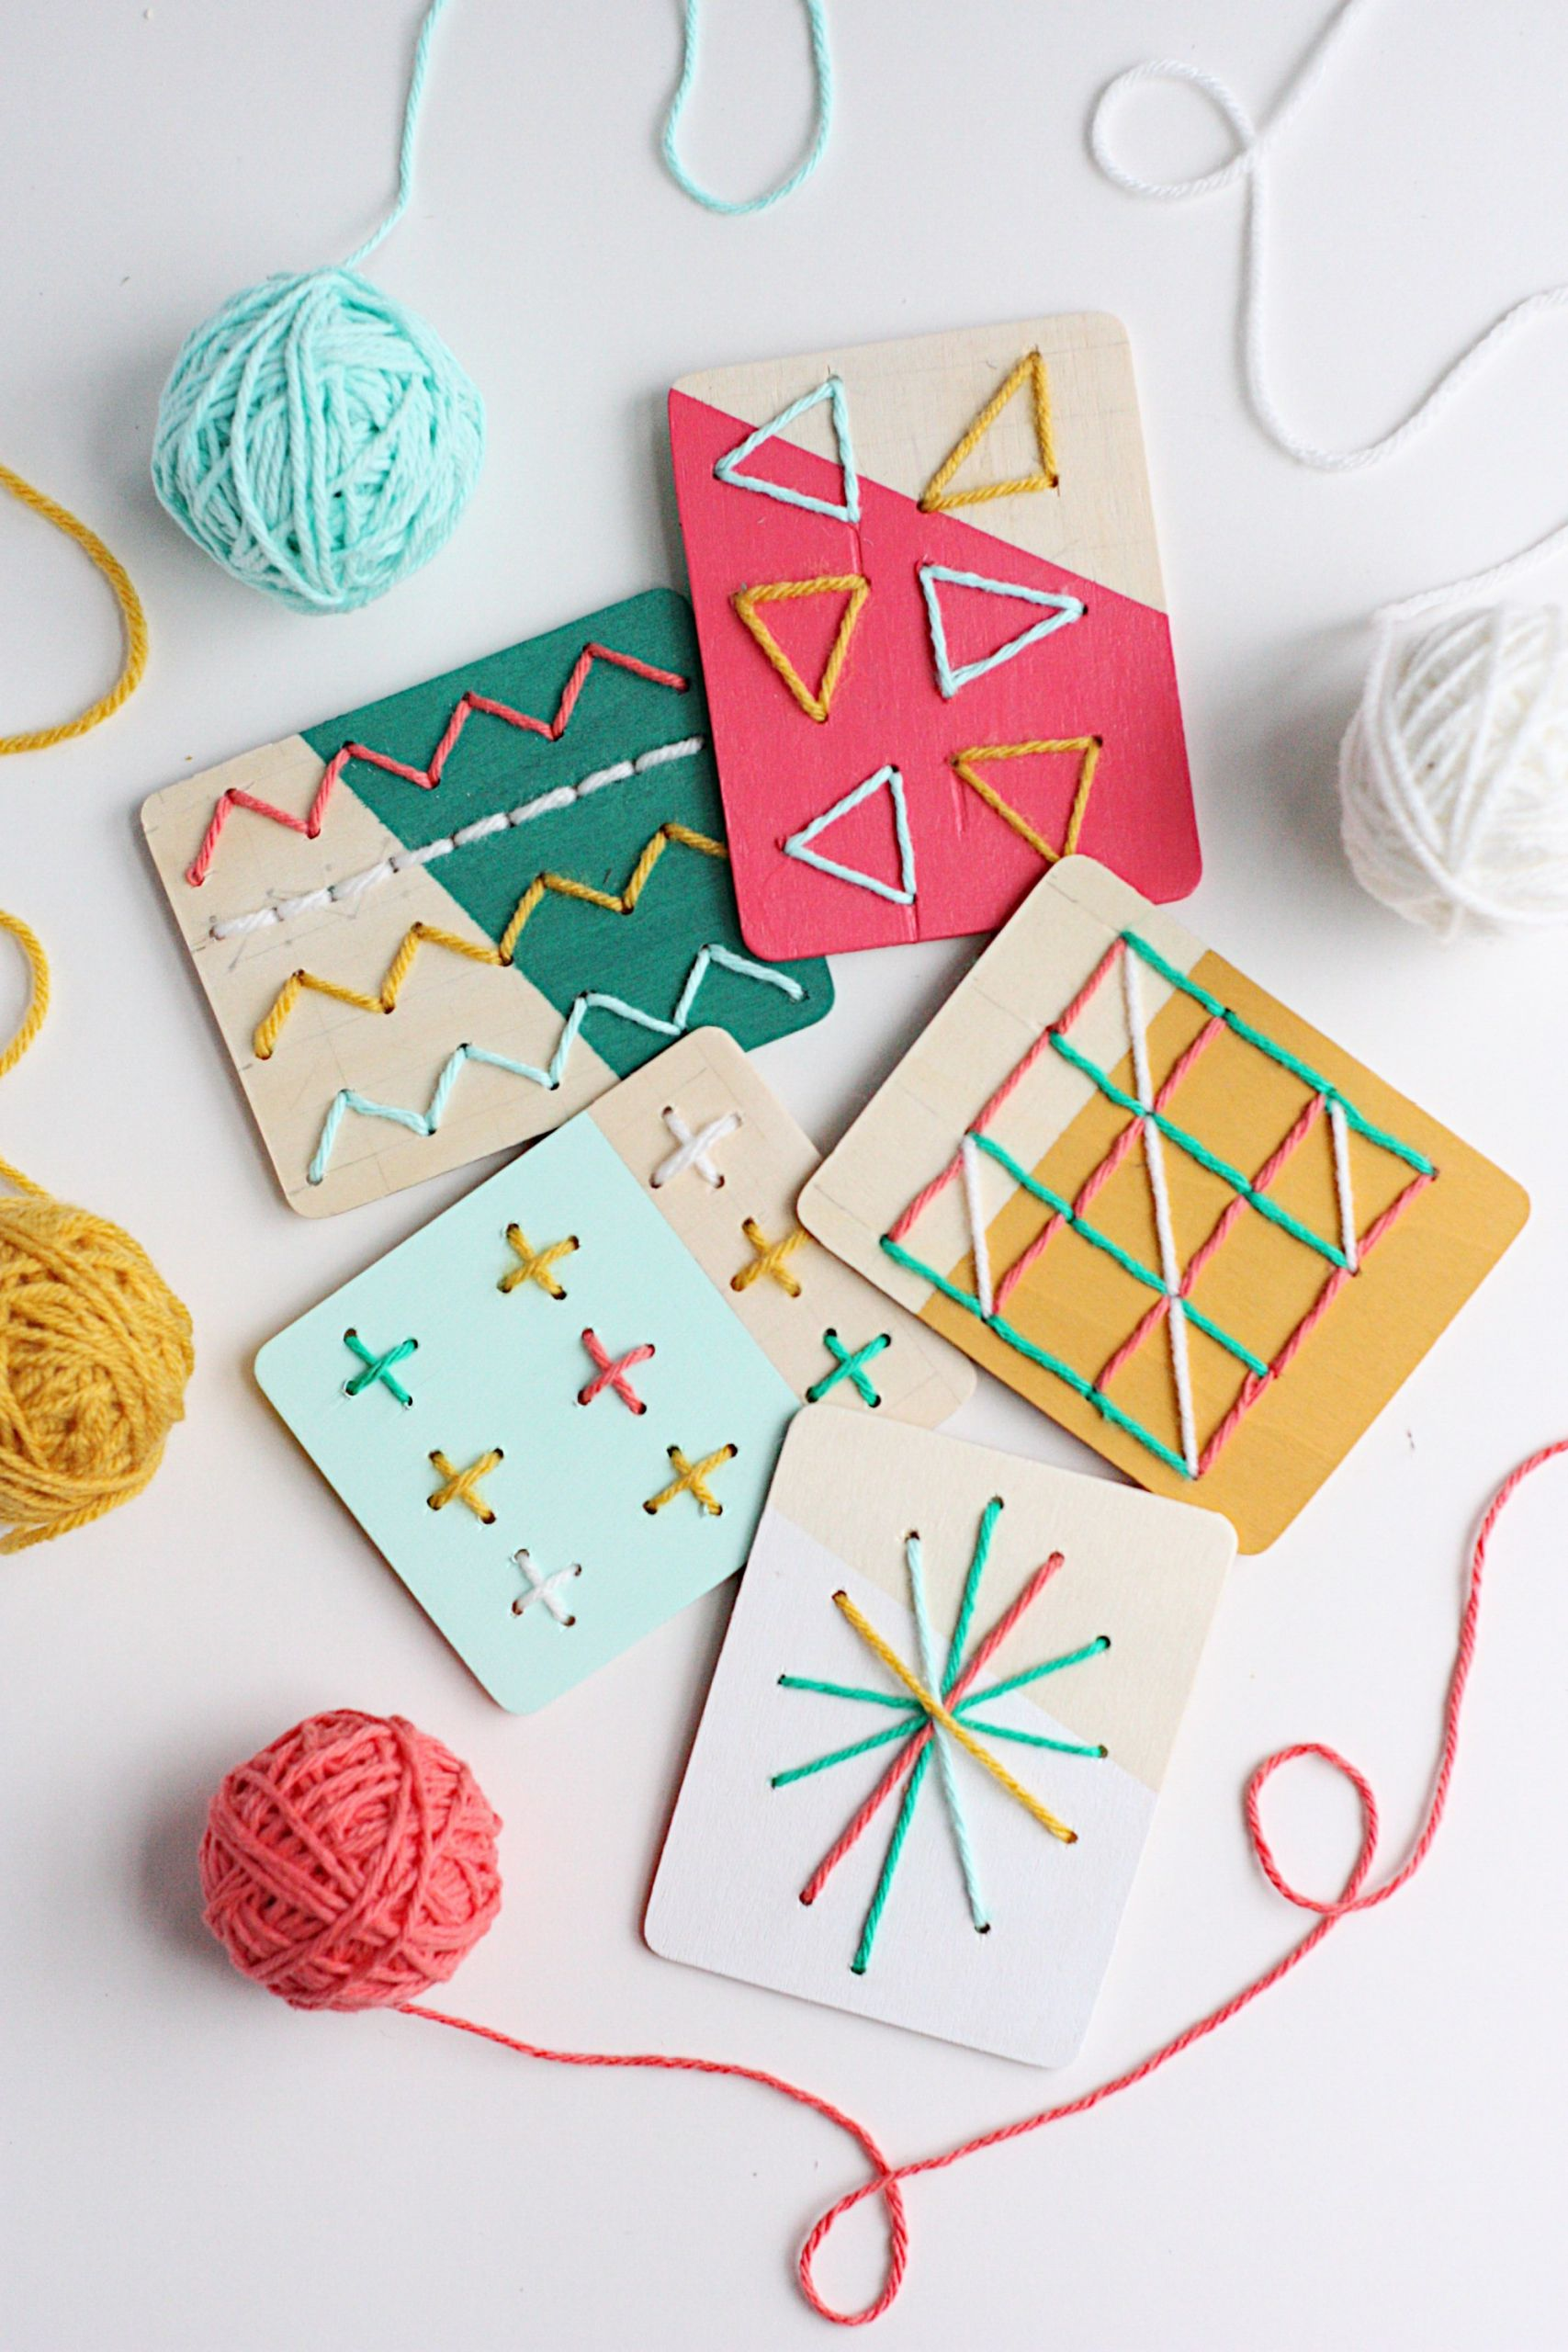 Kids DIY Projects  11 DIY Yarn Crafts That Will Amaze Your Kids Shelterness